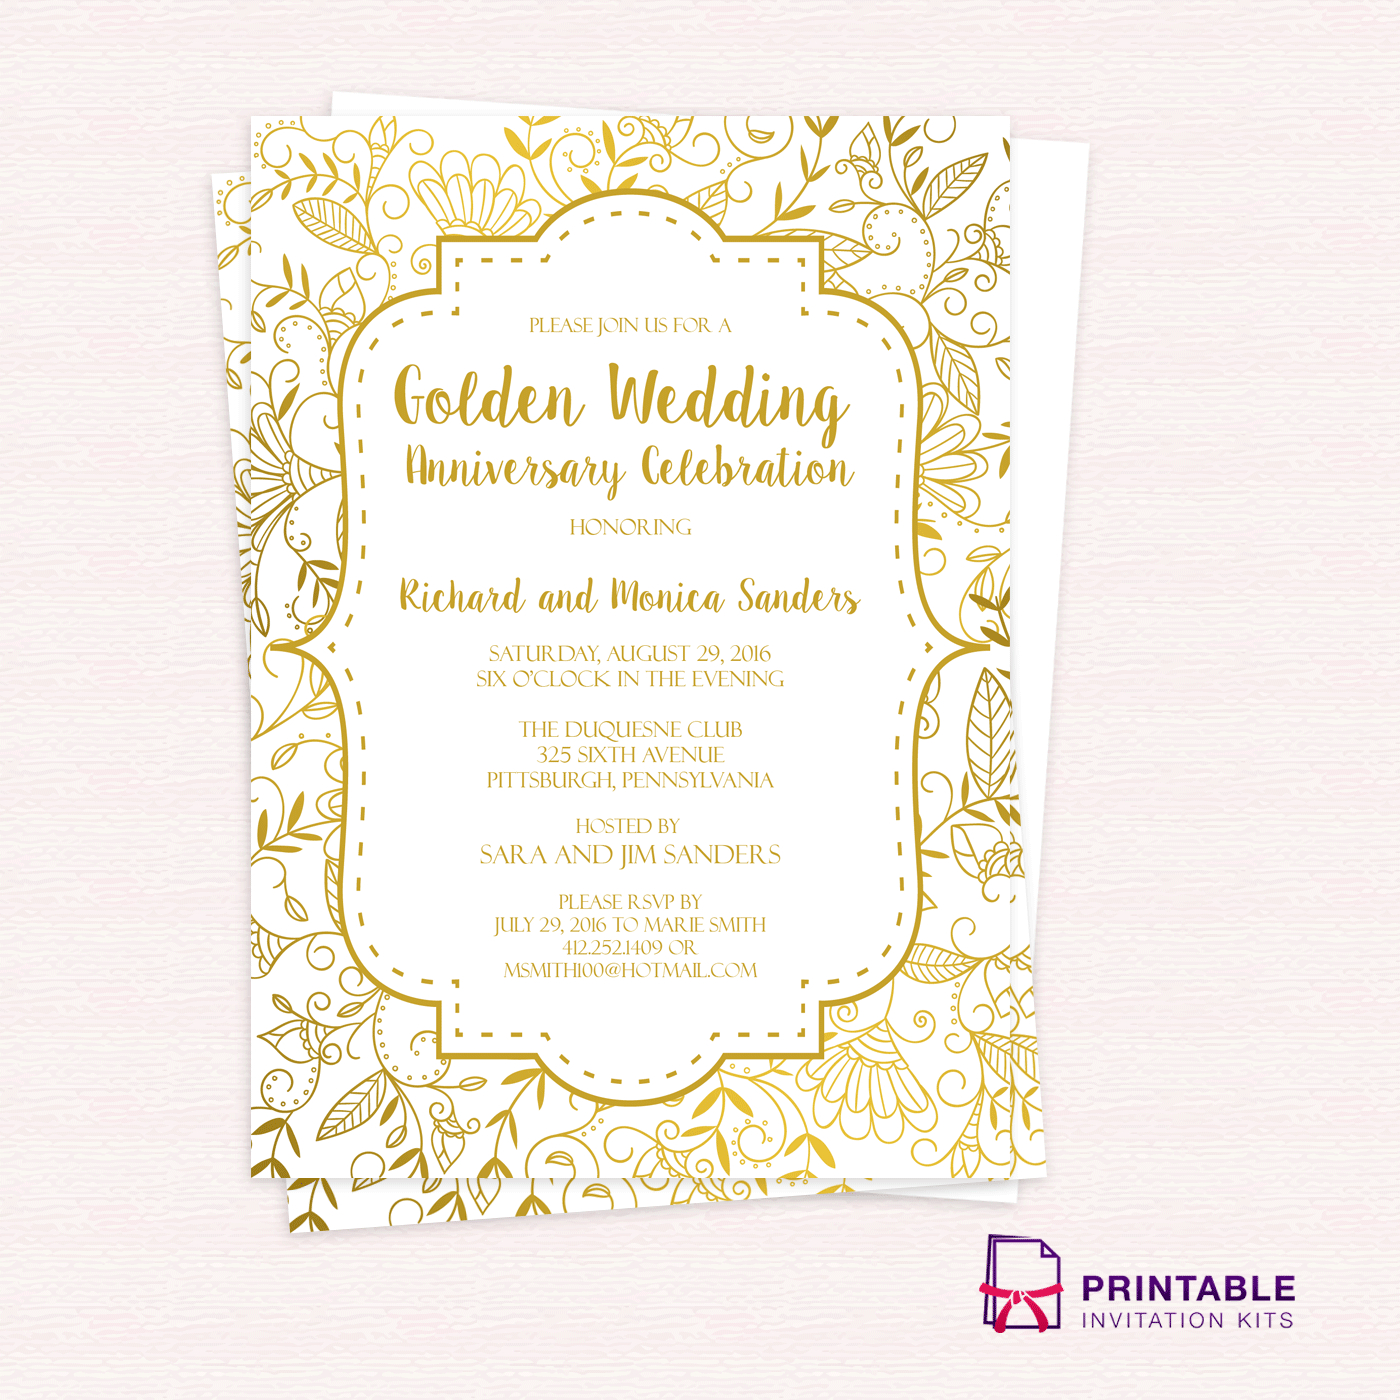 Golden Wedding Anniversary Invitation Template ← Wedding Invitation - Free Printable Wedding Invitation Kits